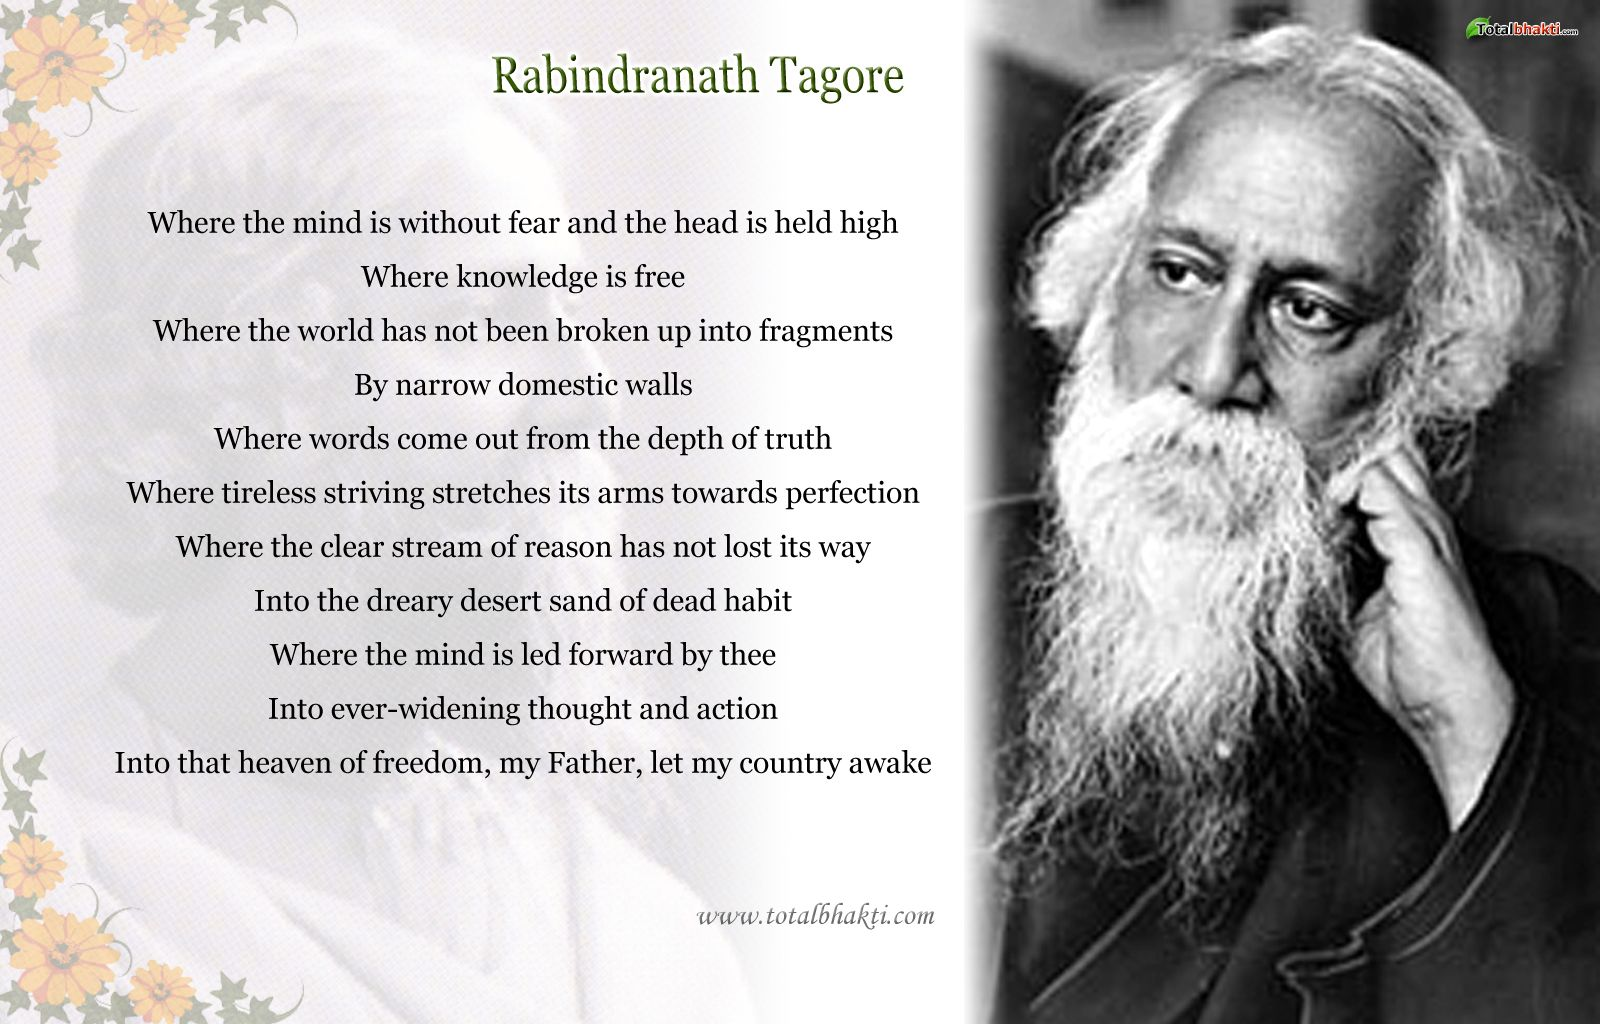 rabindranath tagore boyhood days there were years when rabindranath tagore boyhood days there were years when birds from